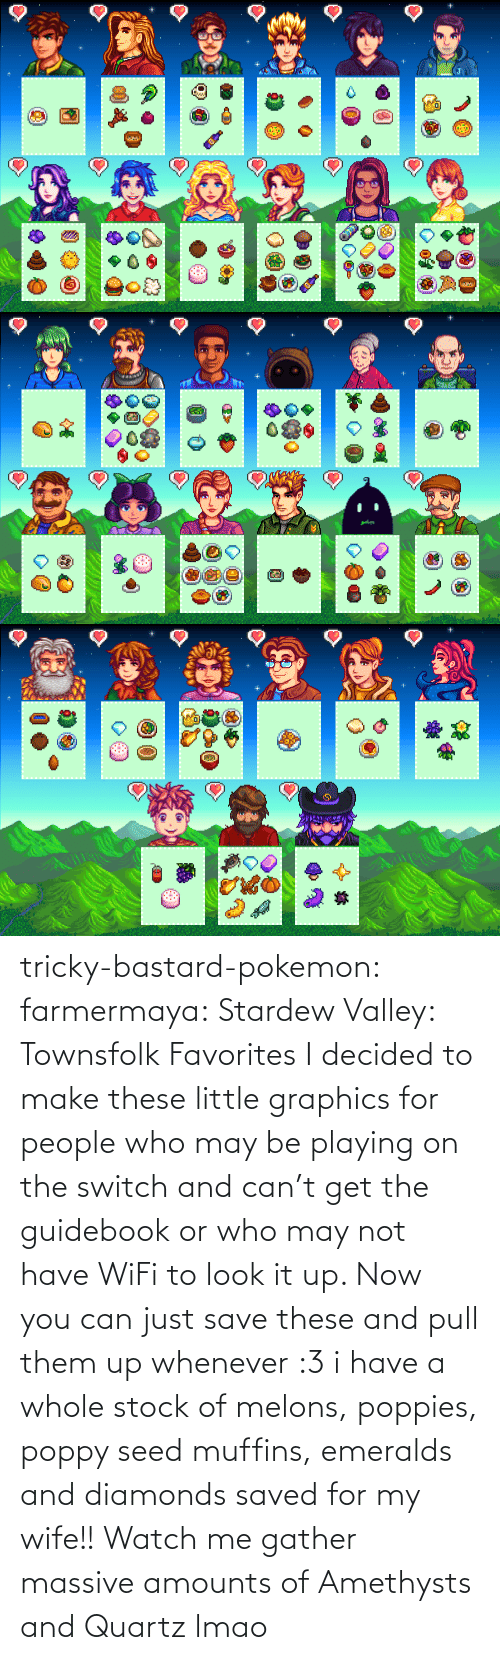 stock: tricky-bastard-pokemon:  farmermaya: Stardew Valley: Townsfolk Favorites  I decided to make these little graphics for people who may be playing on the switch and can't get the guidebook or who may not have WiFi to look it up. Now you can just save these and pull them up whenever :3   i have a whole stock of melons, poppies, poppy seed muffins, emeralds and diamonds saved for my wife!!    Watch me gather massive amounts of Amethysts and Quartz lmao